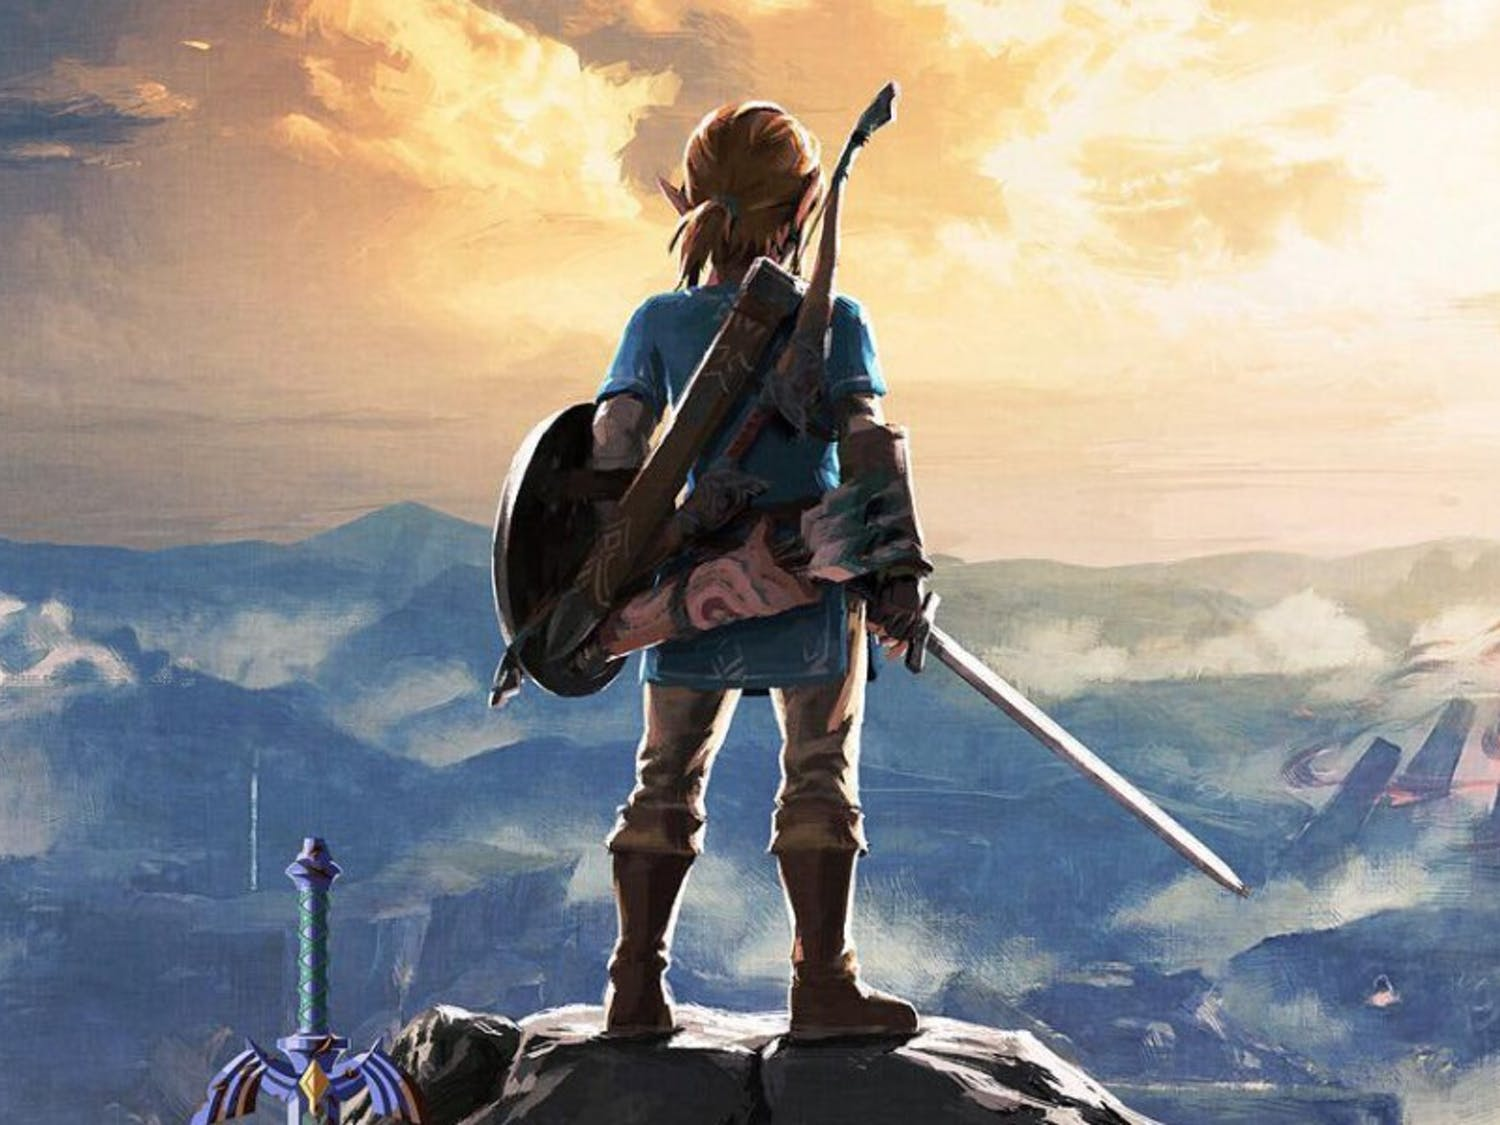 """""""Breath of the Wild"""" launchedin March alongside the Nintendo Switch."""